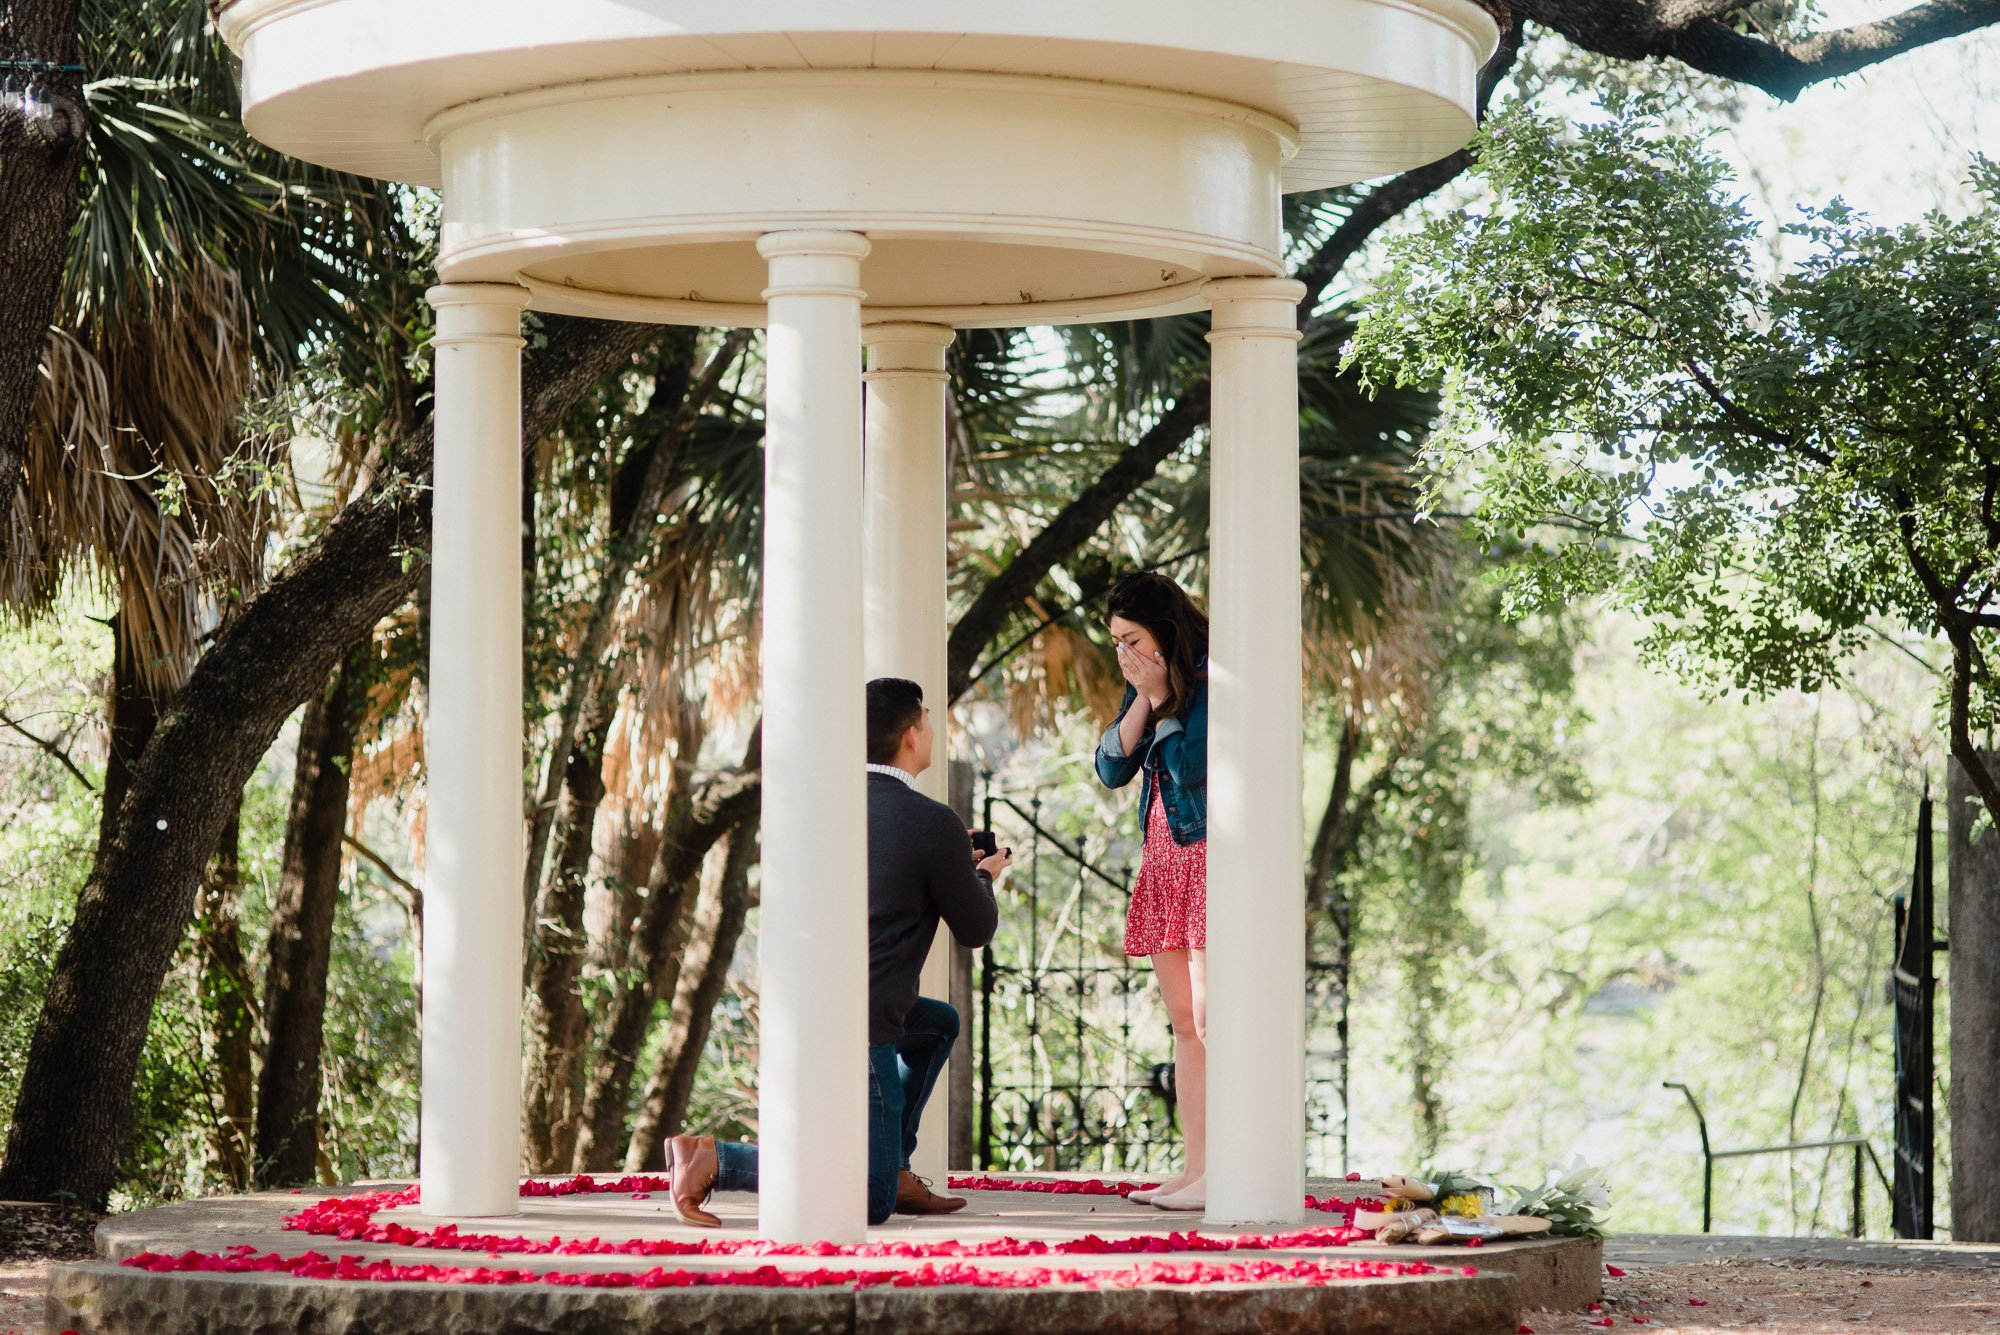 Where to propose in austin texas, scenic and romantic proposal photos, professional proposal photographer in austin texas, early morning wedding proposal photos, laguna gloria photographer